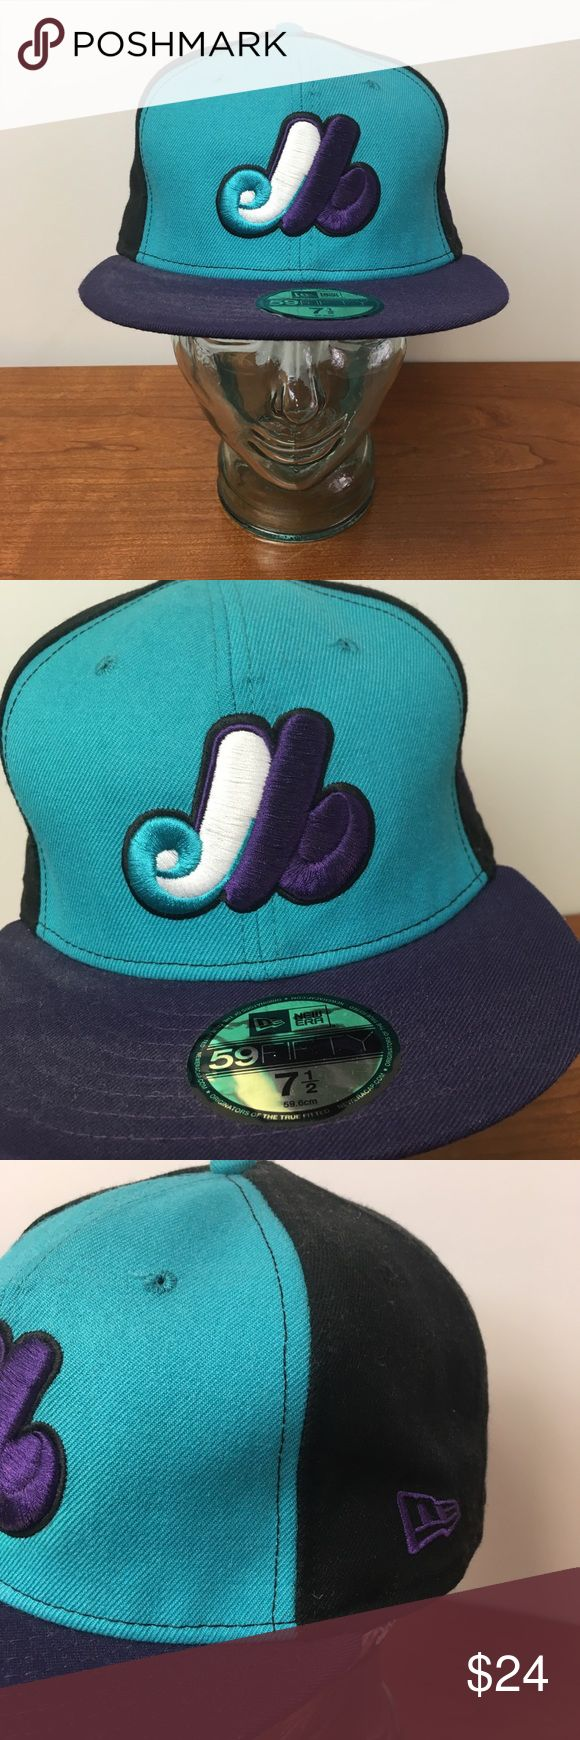 New Era Montreal Expos Baseball Hat Cap 7 1/2 A nice color way to honor the legacy of the Expos Perfect for the Washington Nationals fan Excellent condition with plenty of innings left.  Trusted New Era Quality   Smoke and pet free storage  Happy to answer any questions    Thanks for looking New Era Accessories Hats